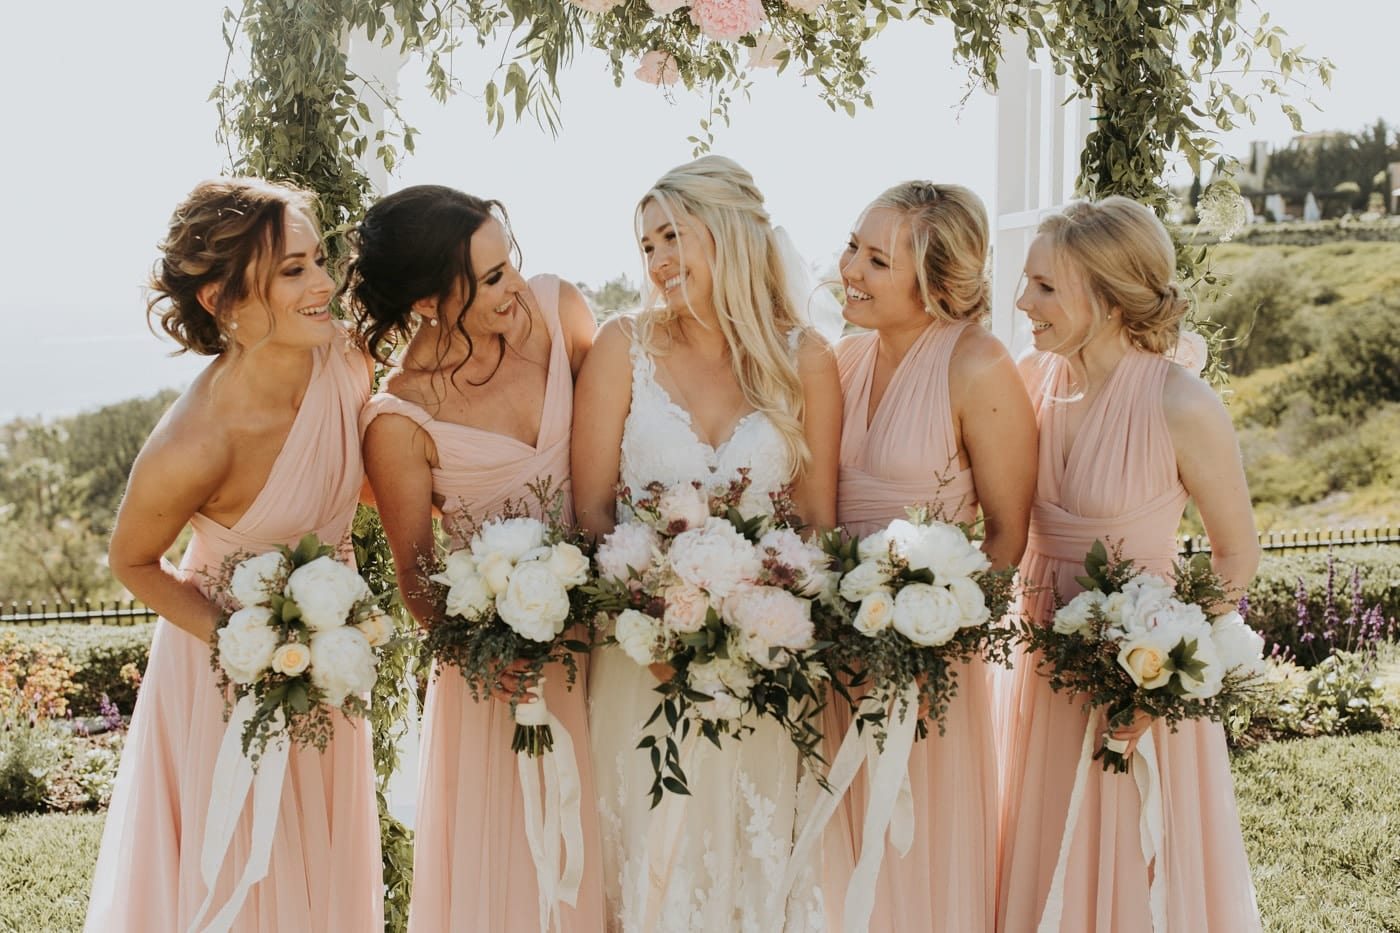 Real Weddings | Vinka Design | Real Brides Wearing Vinka Gowns | Camille and Aaron - Bride and bridesmaids